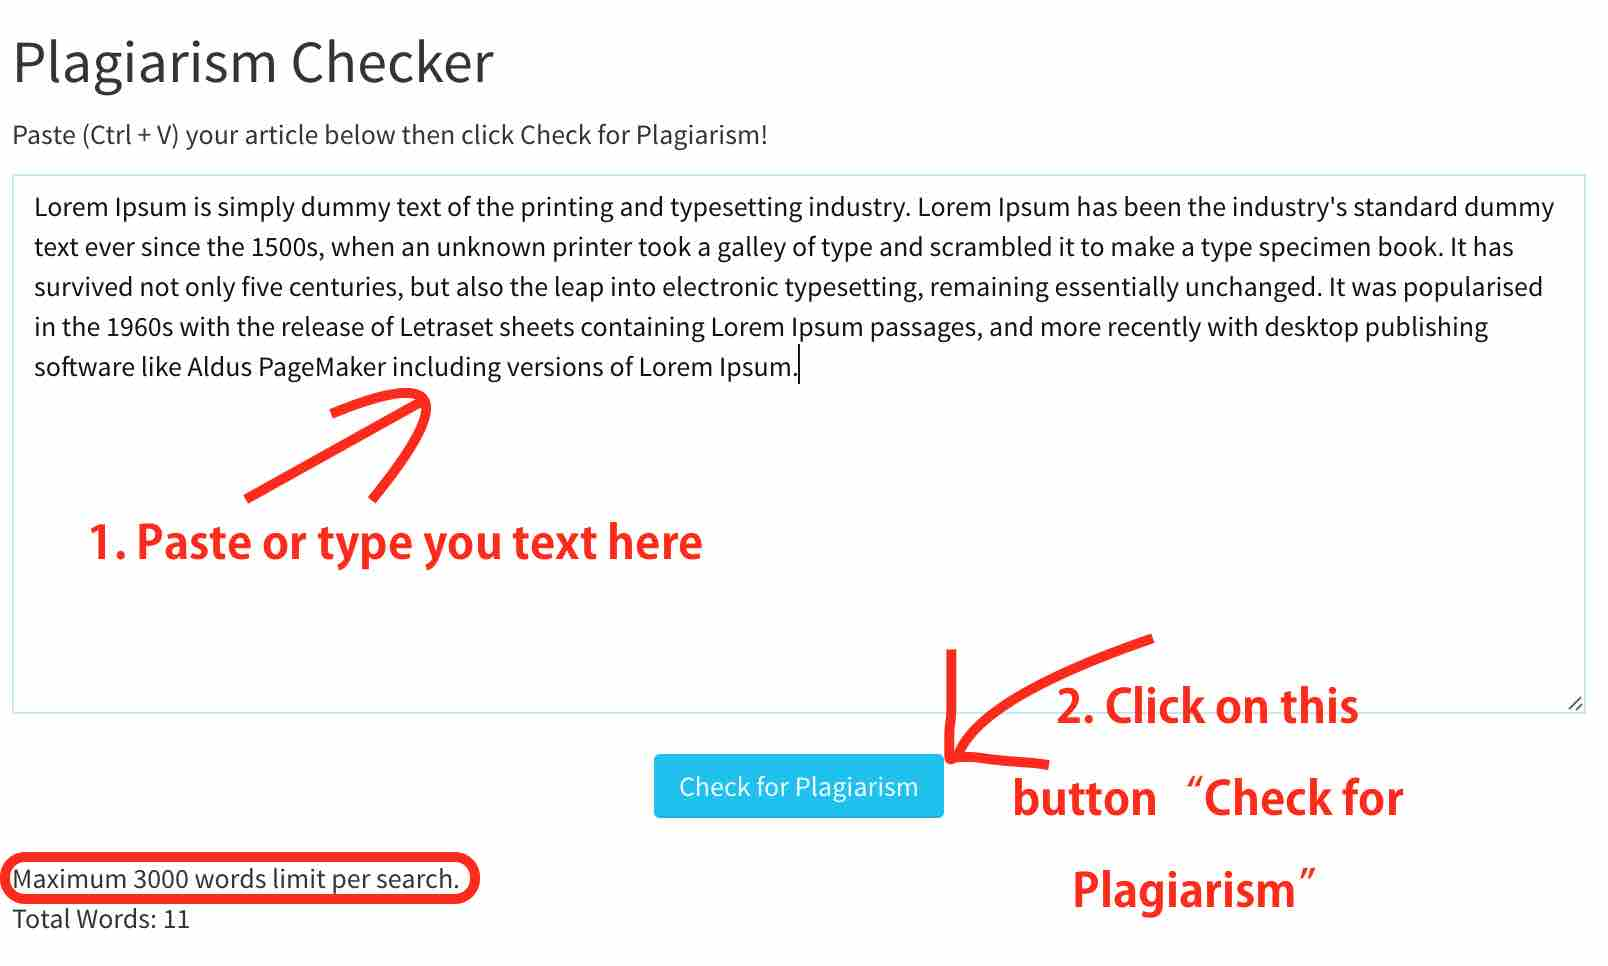 Plagiarism Checker Tool - How to use it!